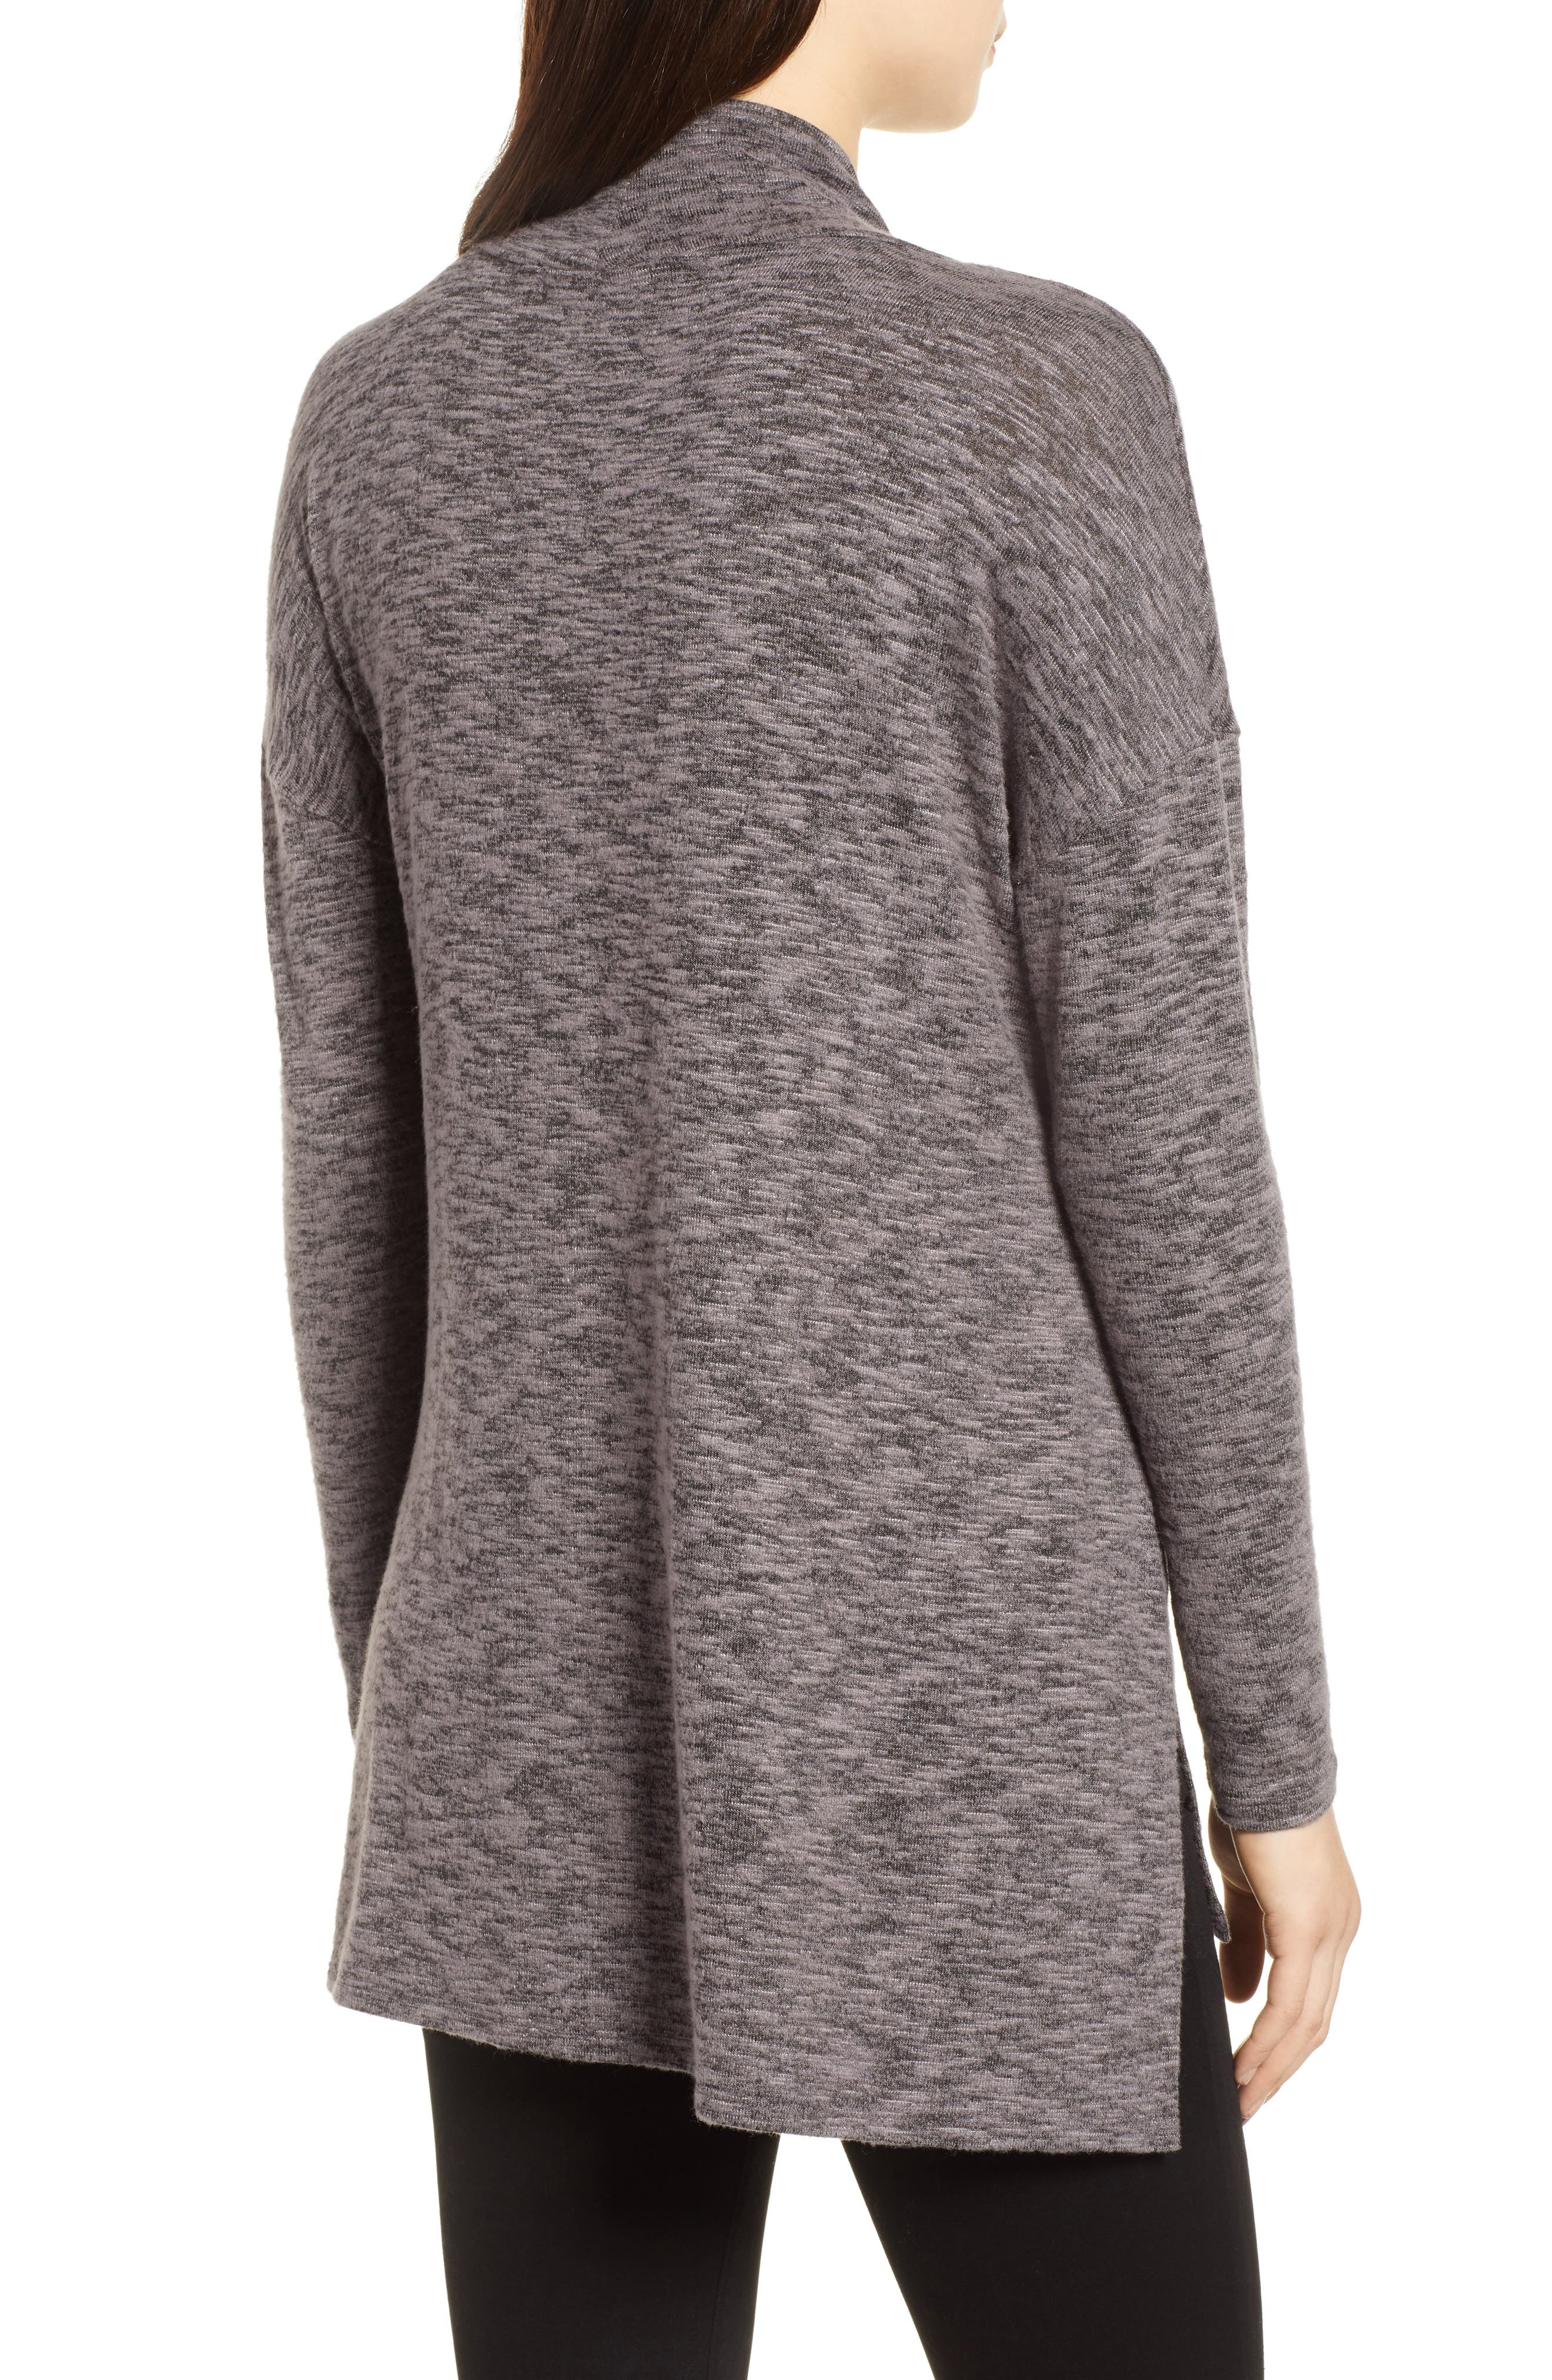 Cowl Neck Tunic Top,                             Alternate thumbnail 2, color,                             CHARCOAL